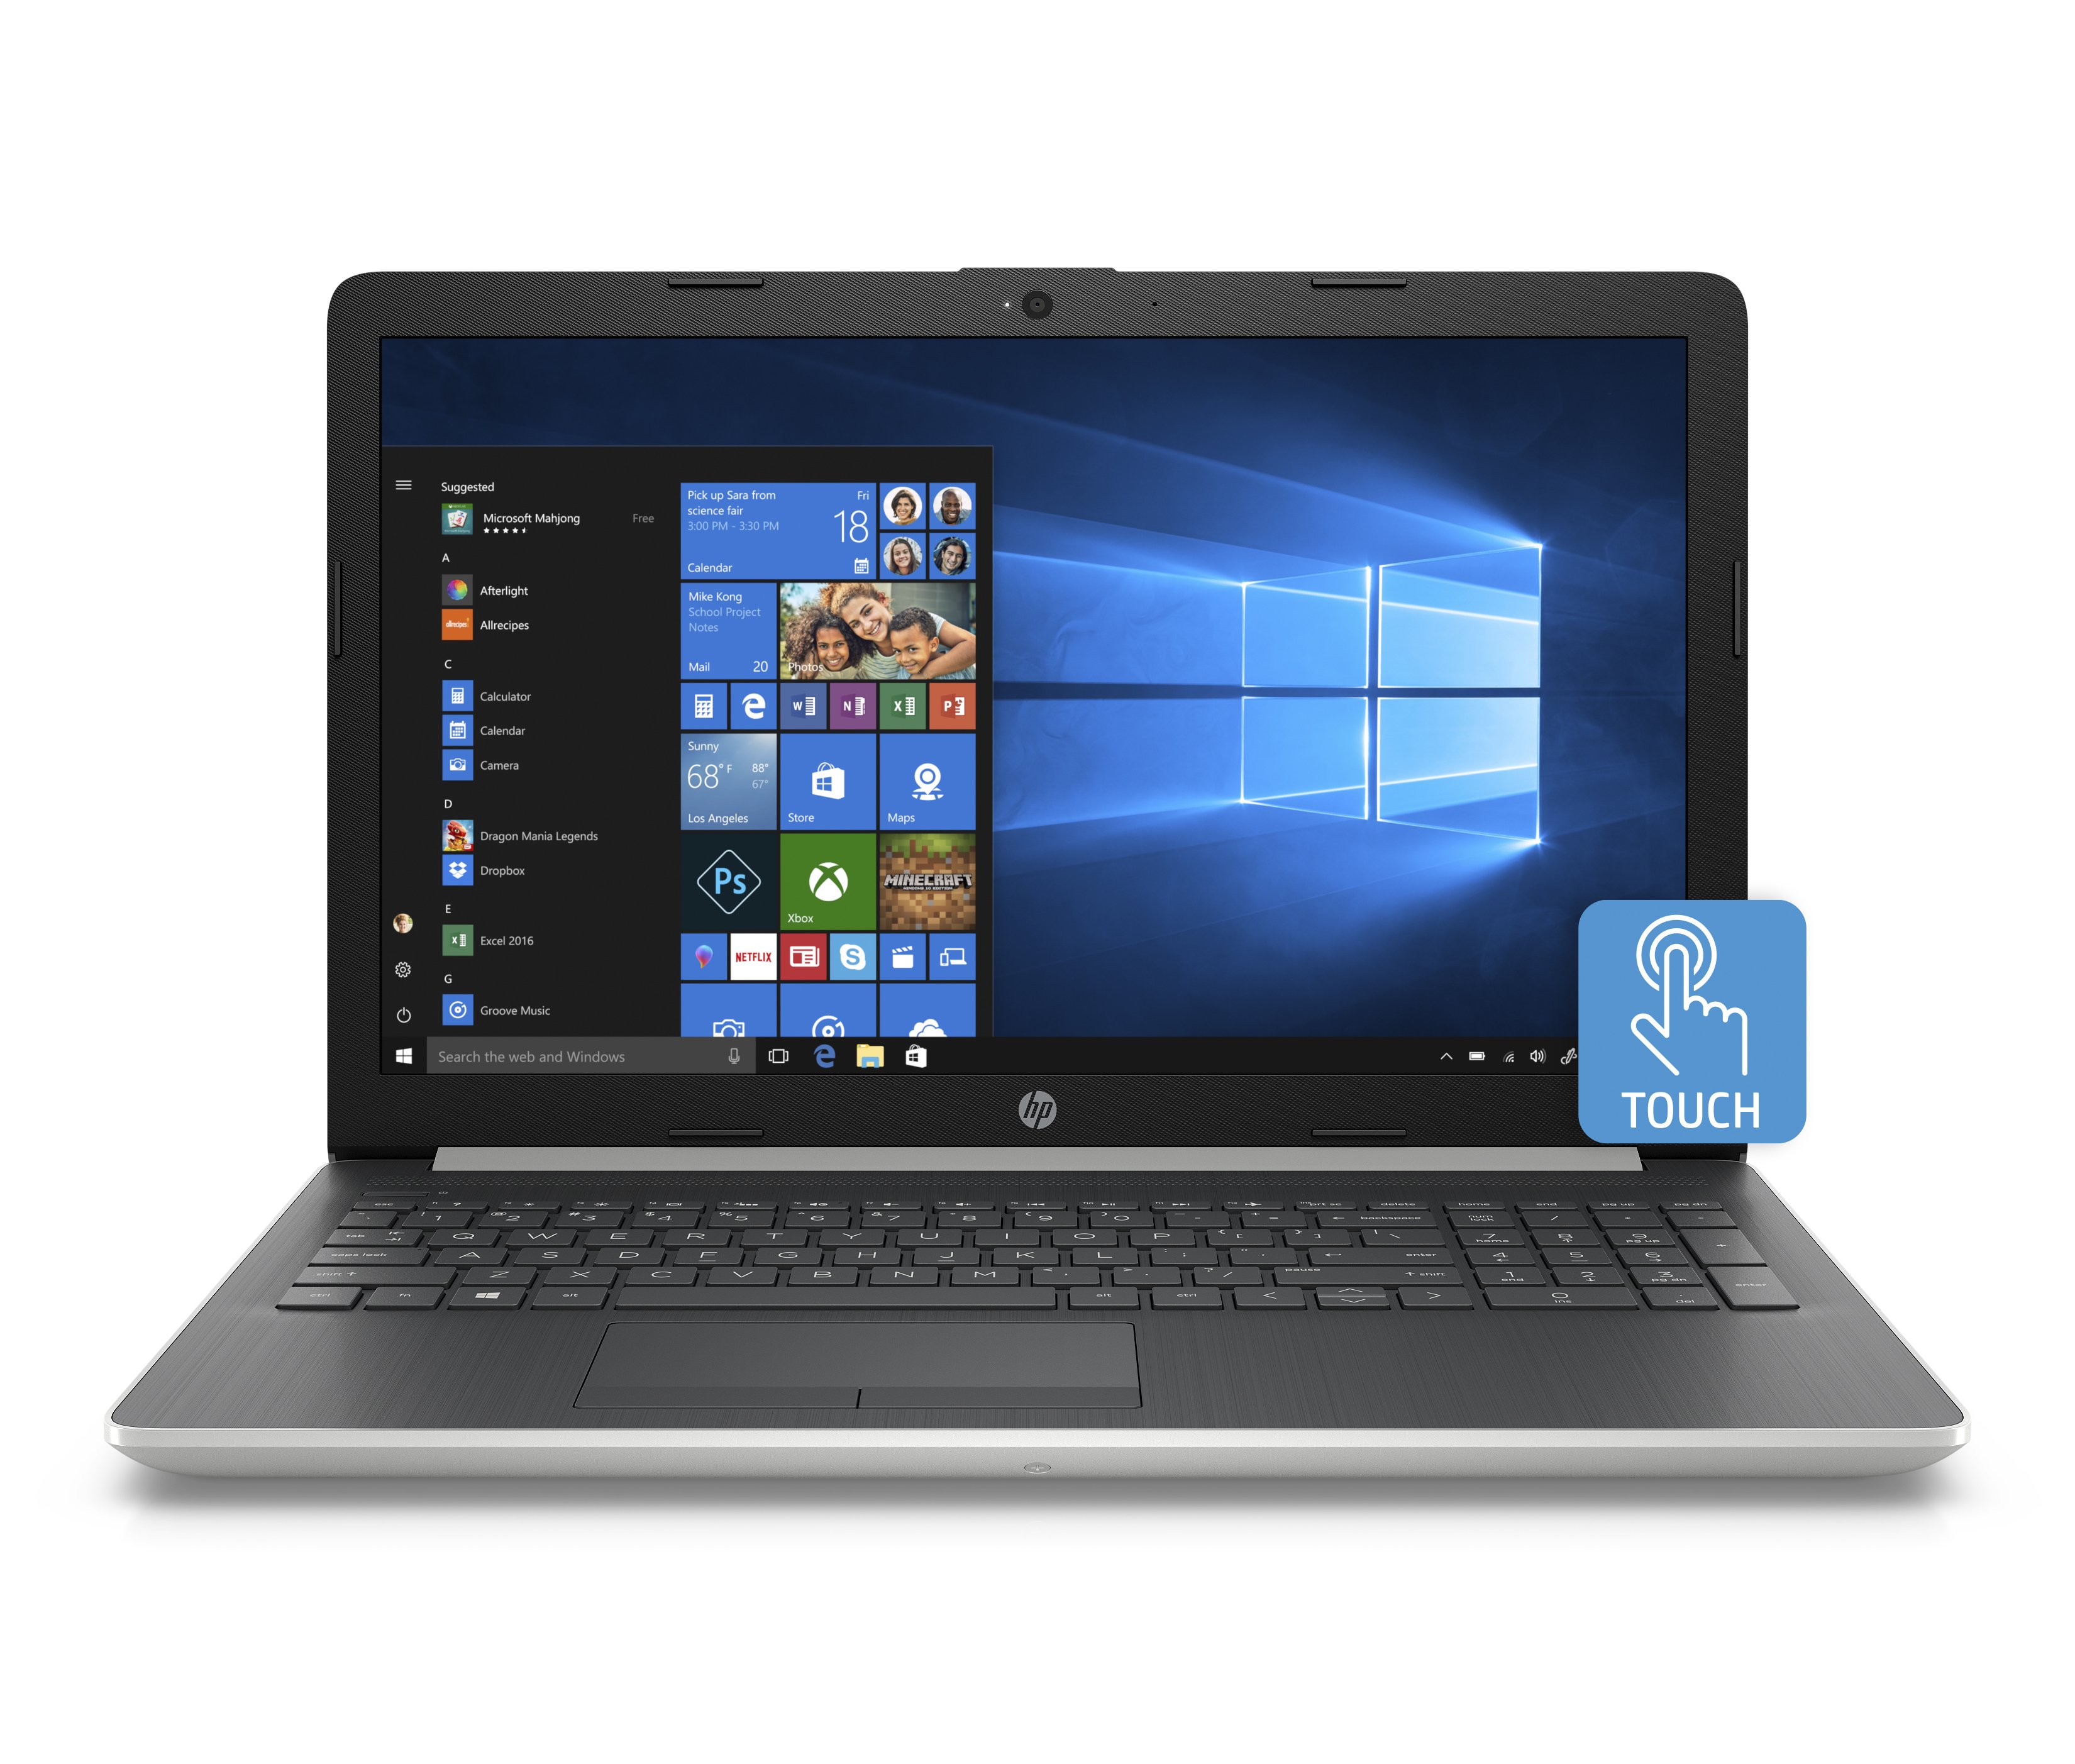 "HP 15 Graphite Mist Laptop 15.6"" Touchscreen , Intel Core i5-8250U, Intel UHD Graphics 620, 1TB HDD + 16GB Intel Optane memory, 4GB SDRAM, DVD, 15-da0053wm"